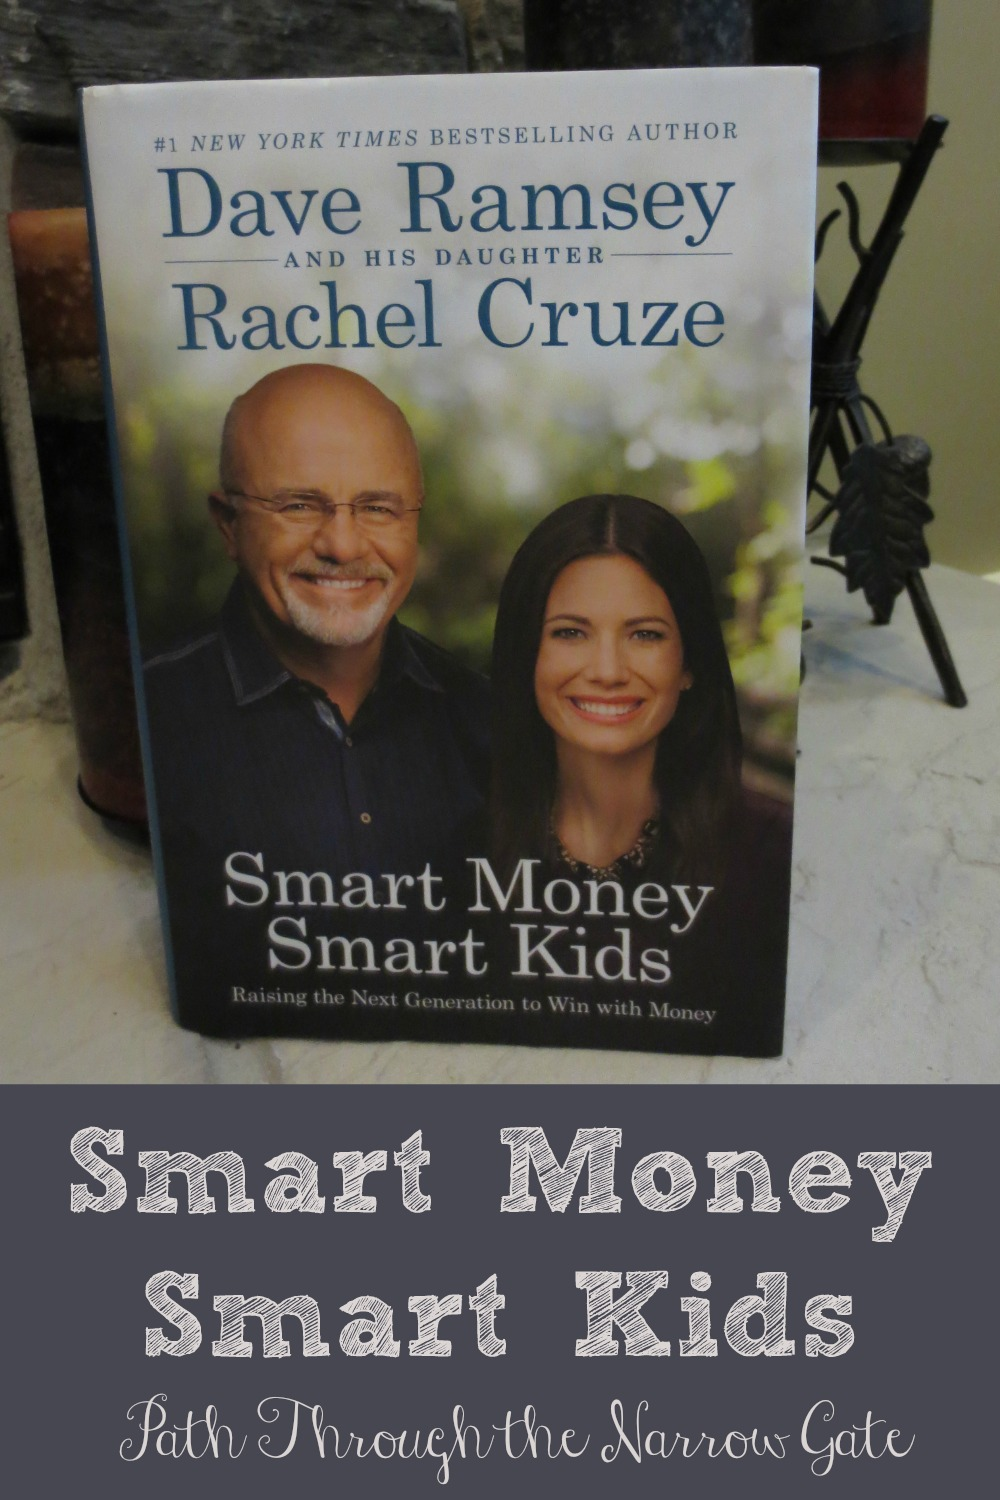 When it comes to something as important as teaching our kids about finances, it is essential that we have a do-able game plan. That game-plan is exactly what Smart Money, Smart Kids offers.